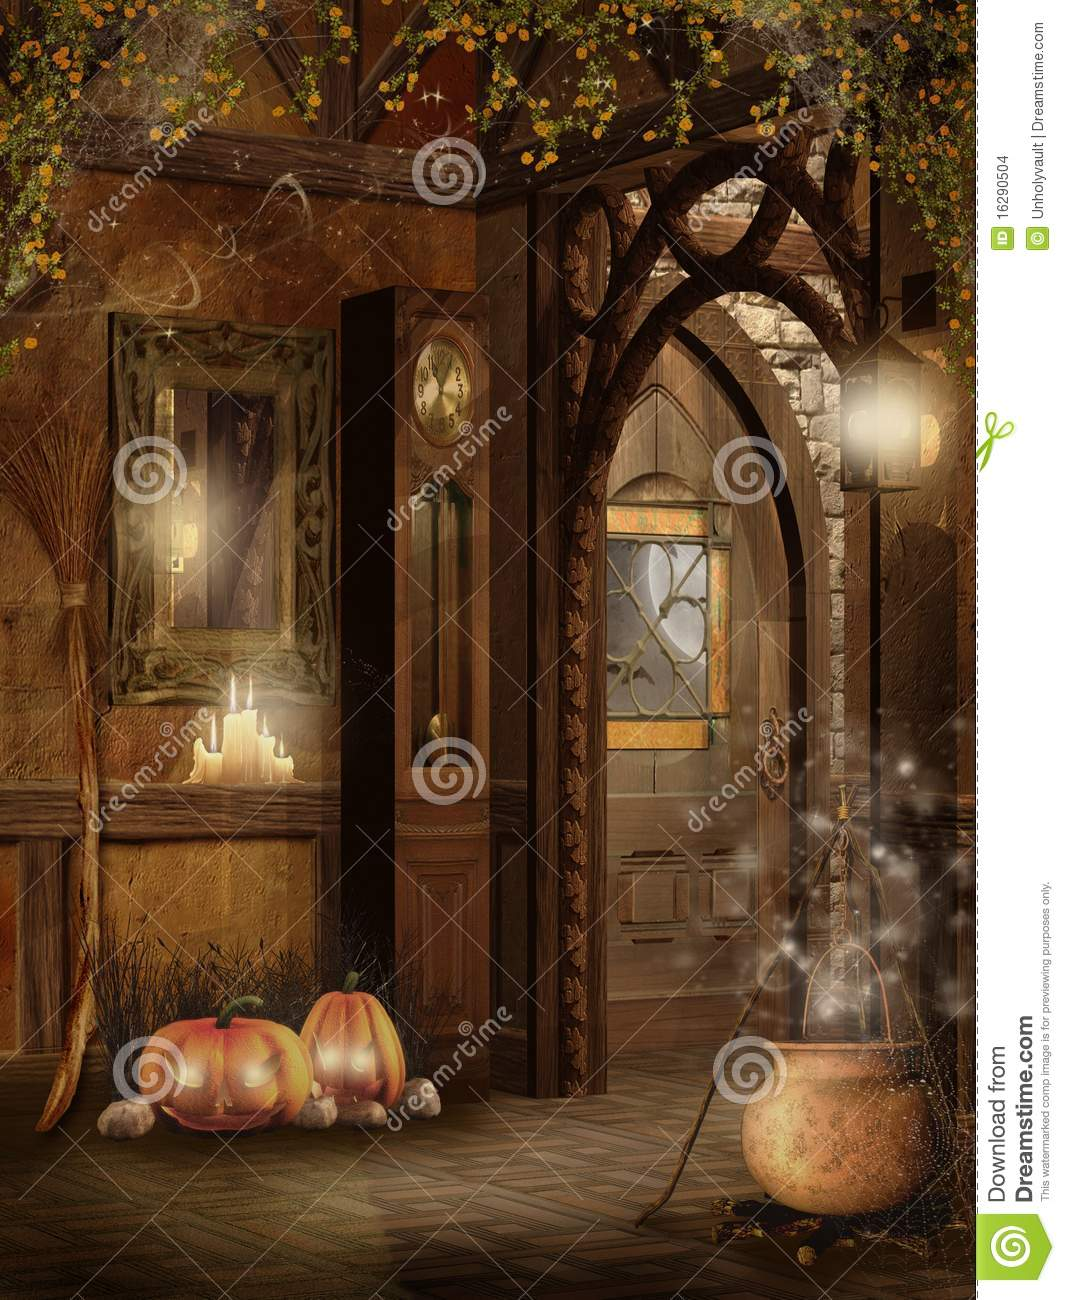 Cottage Interior With Halloween Decorations Stock Images ...